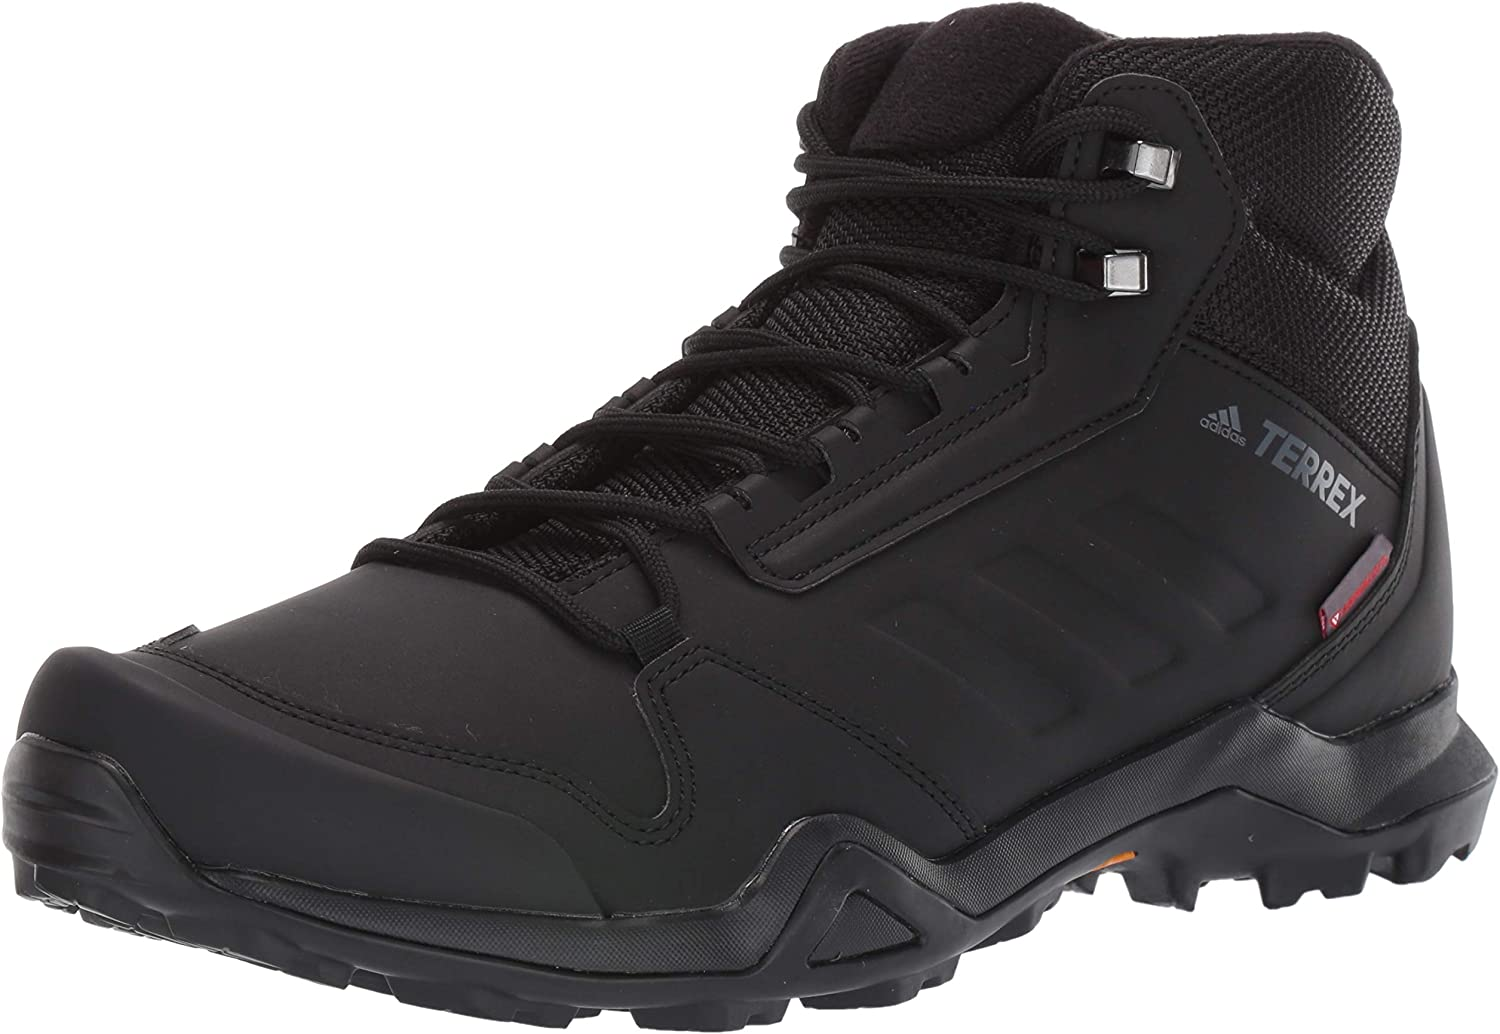 adidas outdoor Men s Terrex Ax3 Beta Mid Cw Hiking Boot